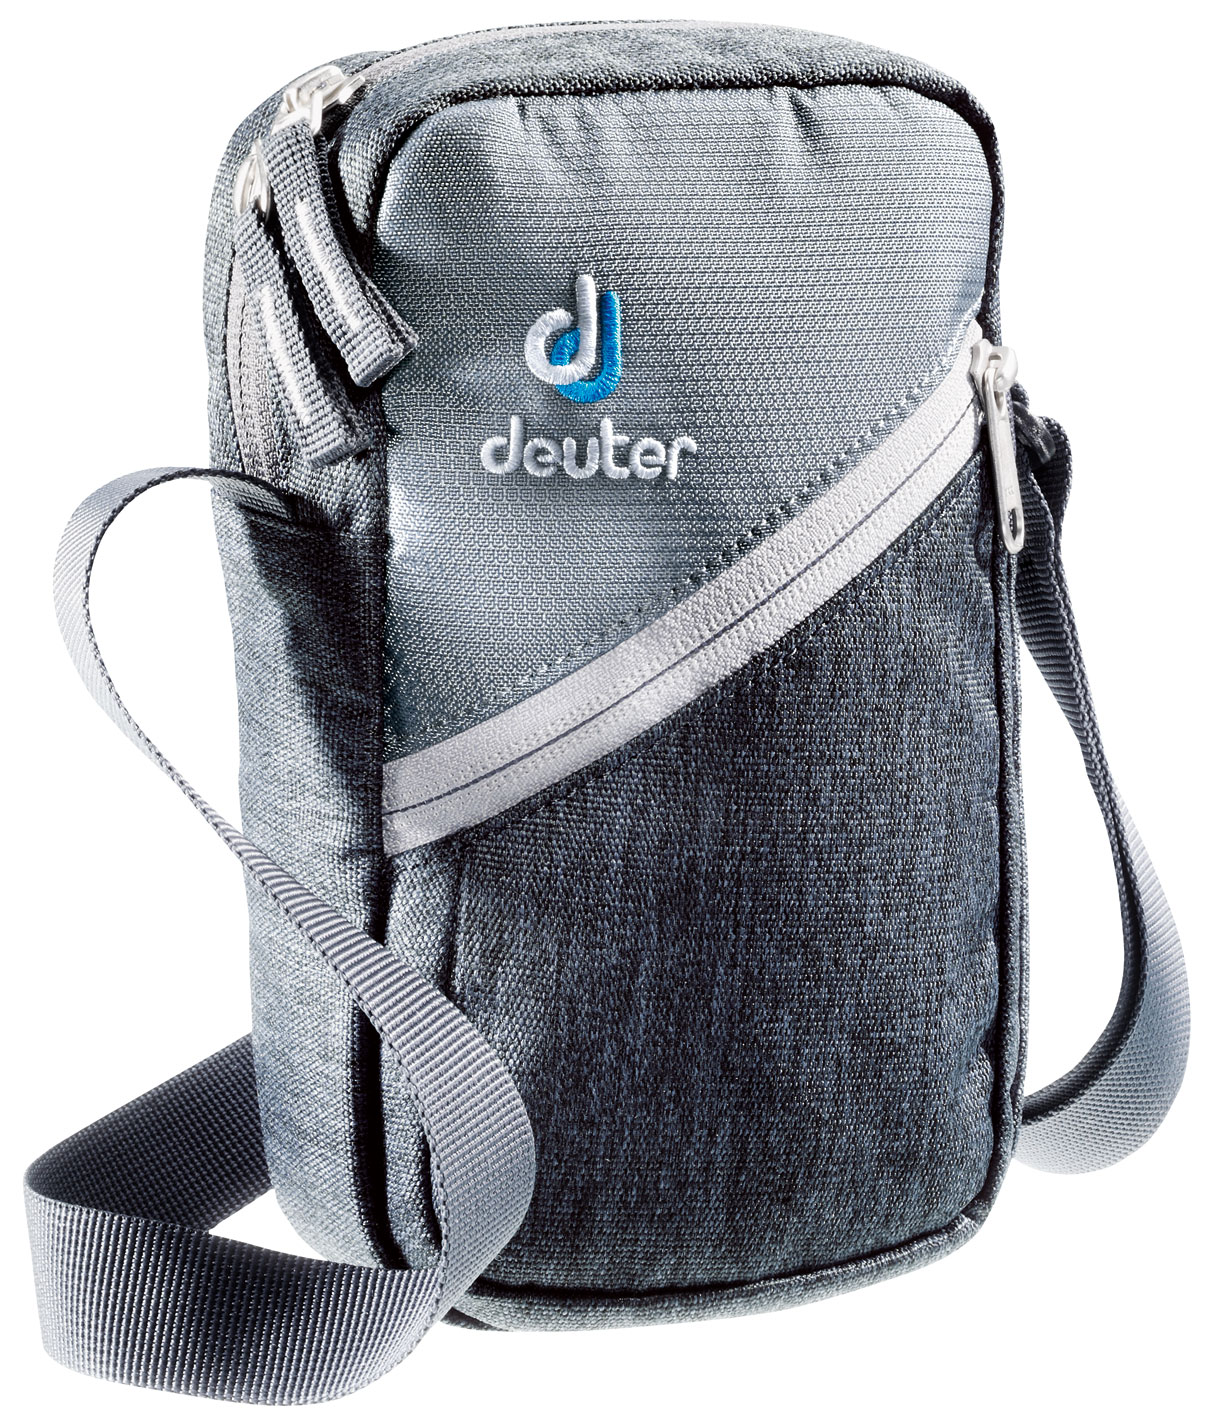 Deuter Escape I titan-dresscode-30